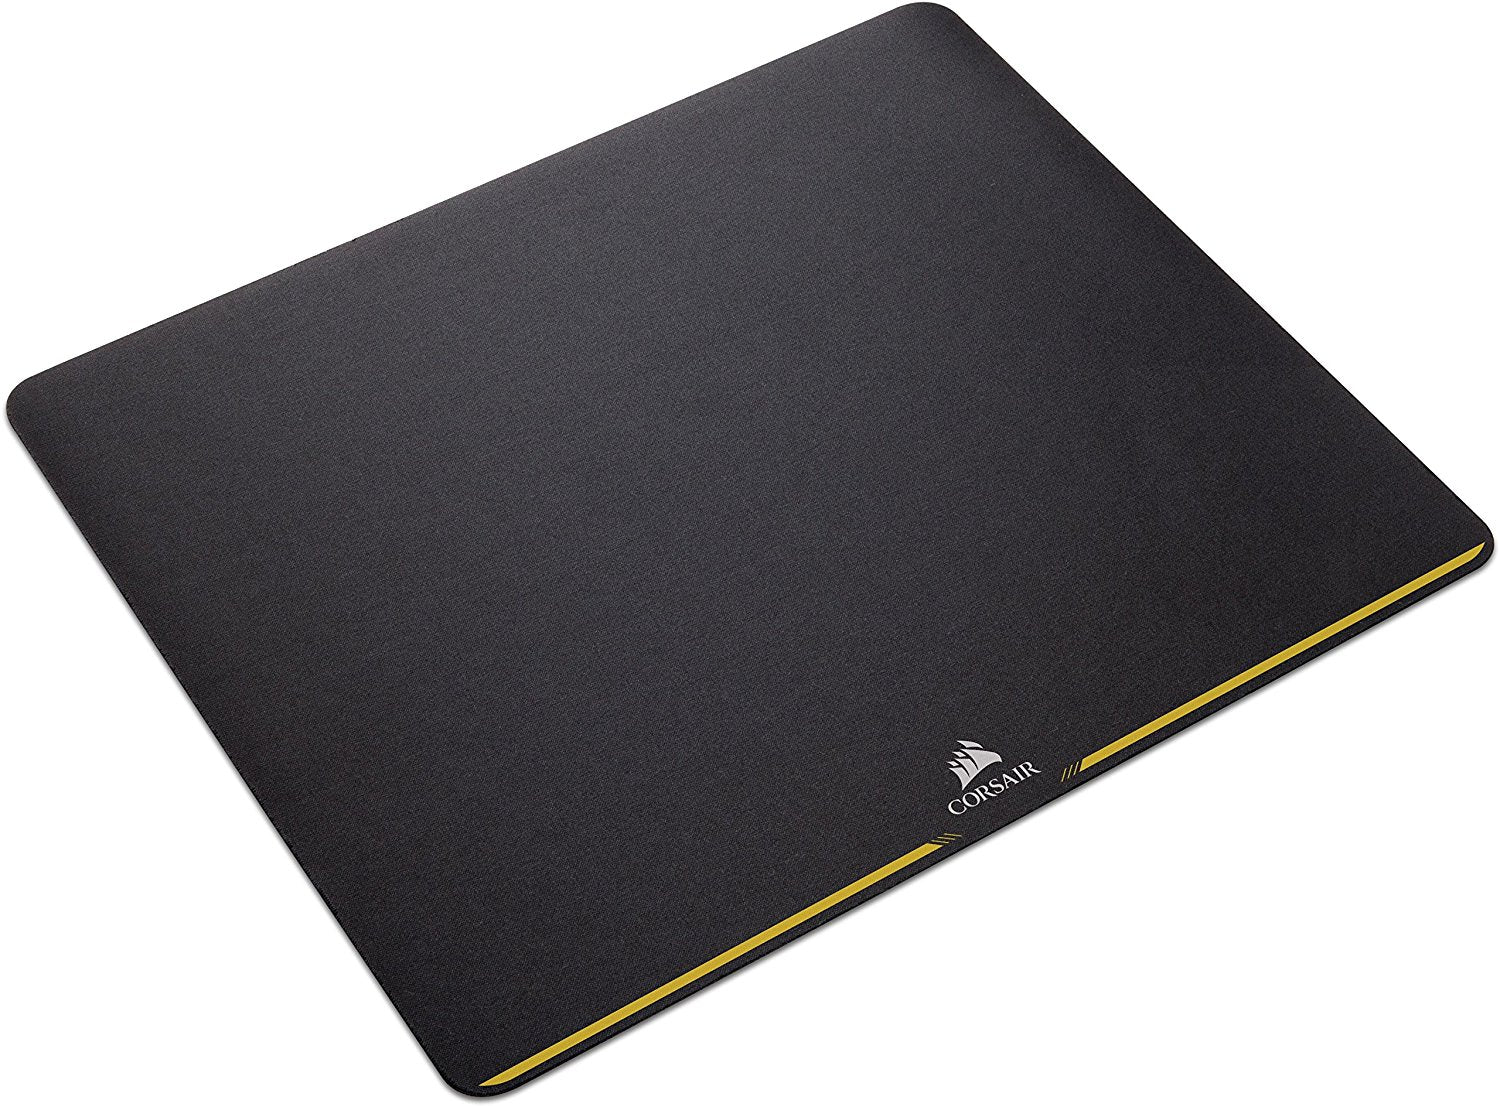 CORSAIR MM200 - Cloth Mouse Pad - High-Performance Mouse Pad Optimized for Gaming Sensors - Designed for Maximum Control - Medium